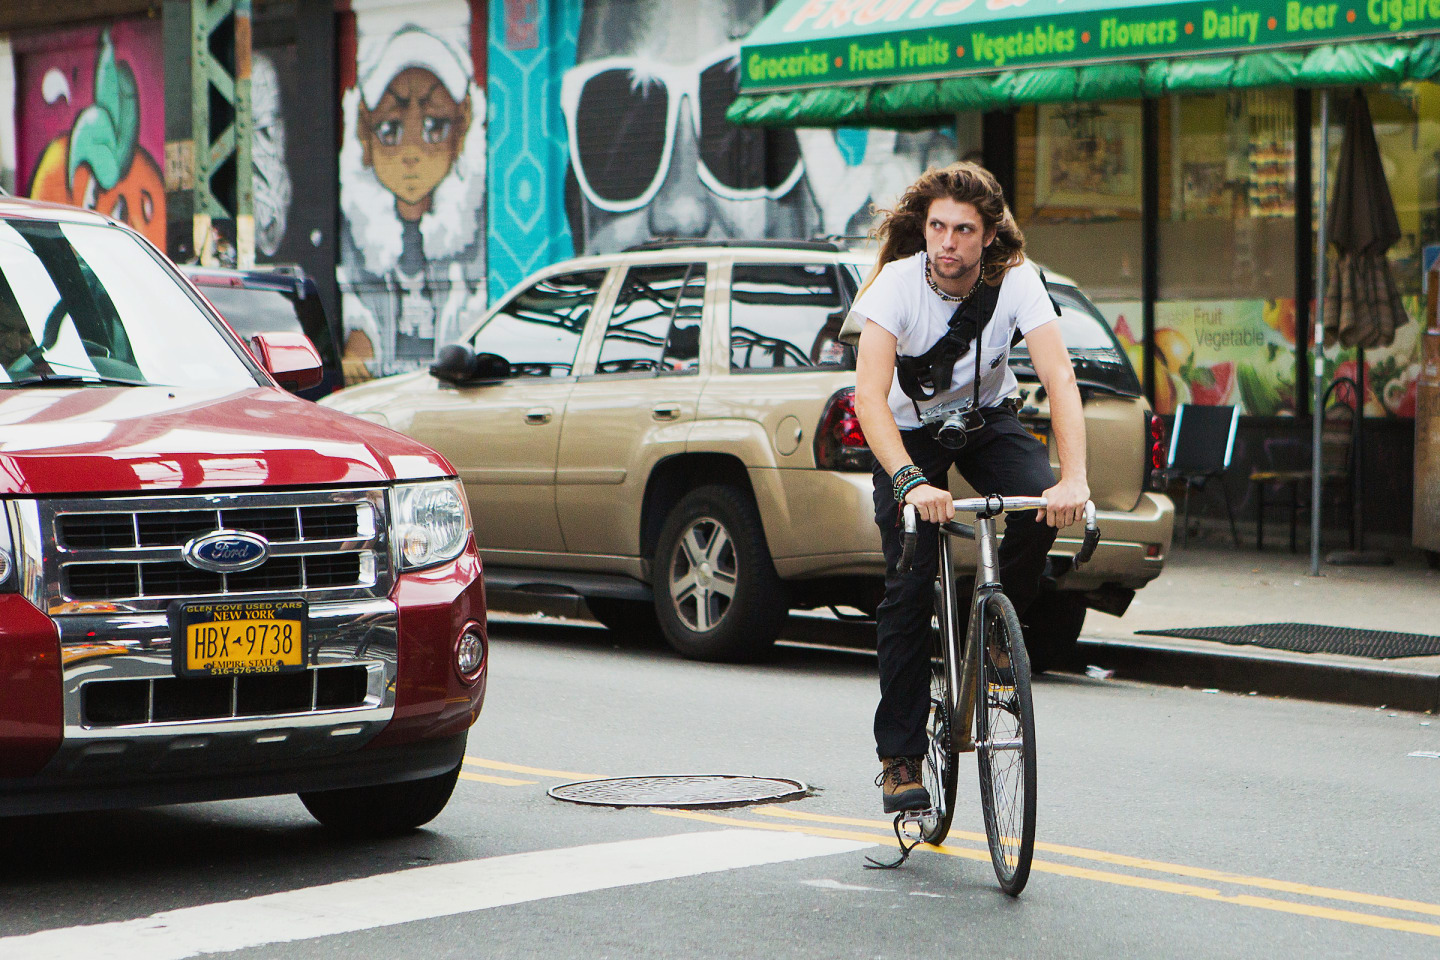 Cooper Ray Explains The Hidden New York That Only Bike Messengers See